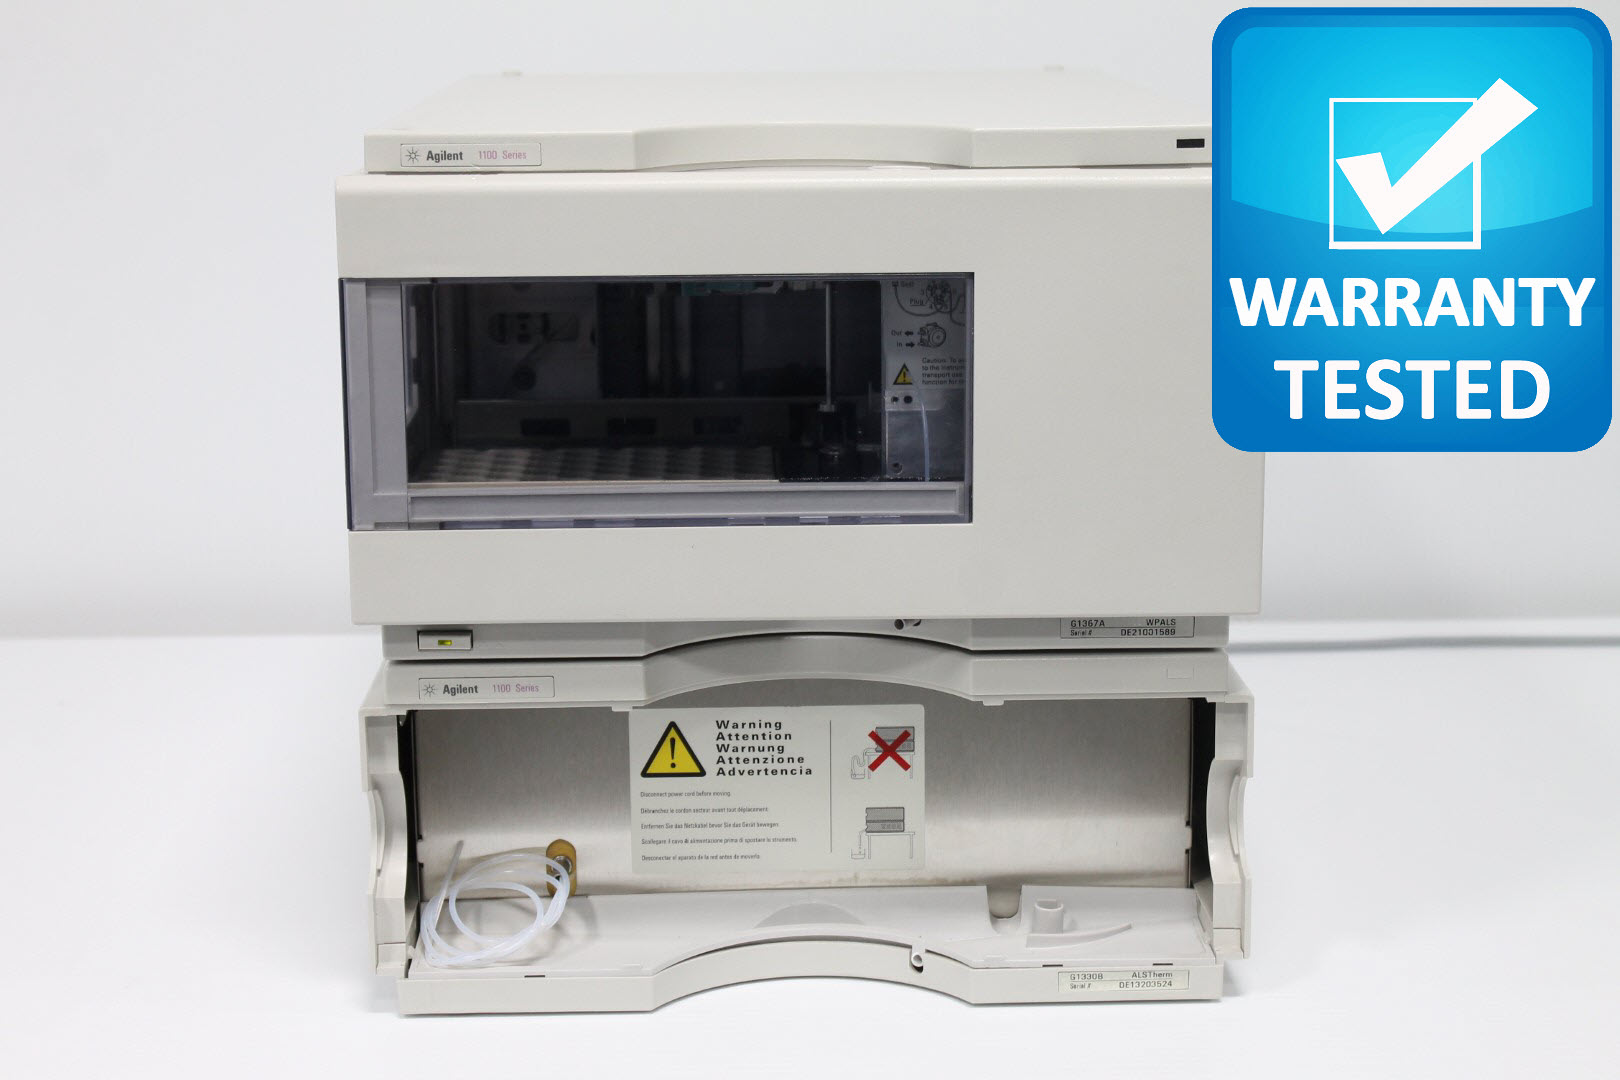 Agilent G1367A Well-Plate Autosampler w/ G1330B Thermostat HPLC